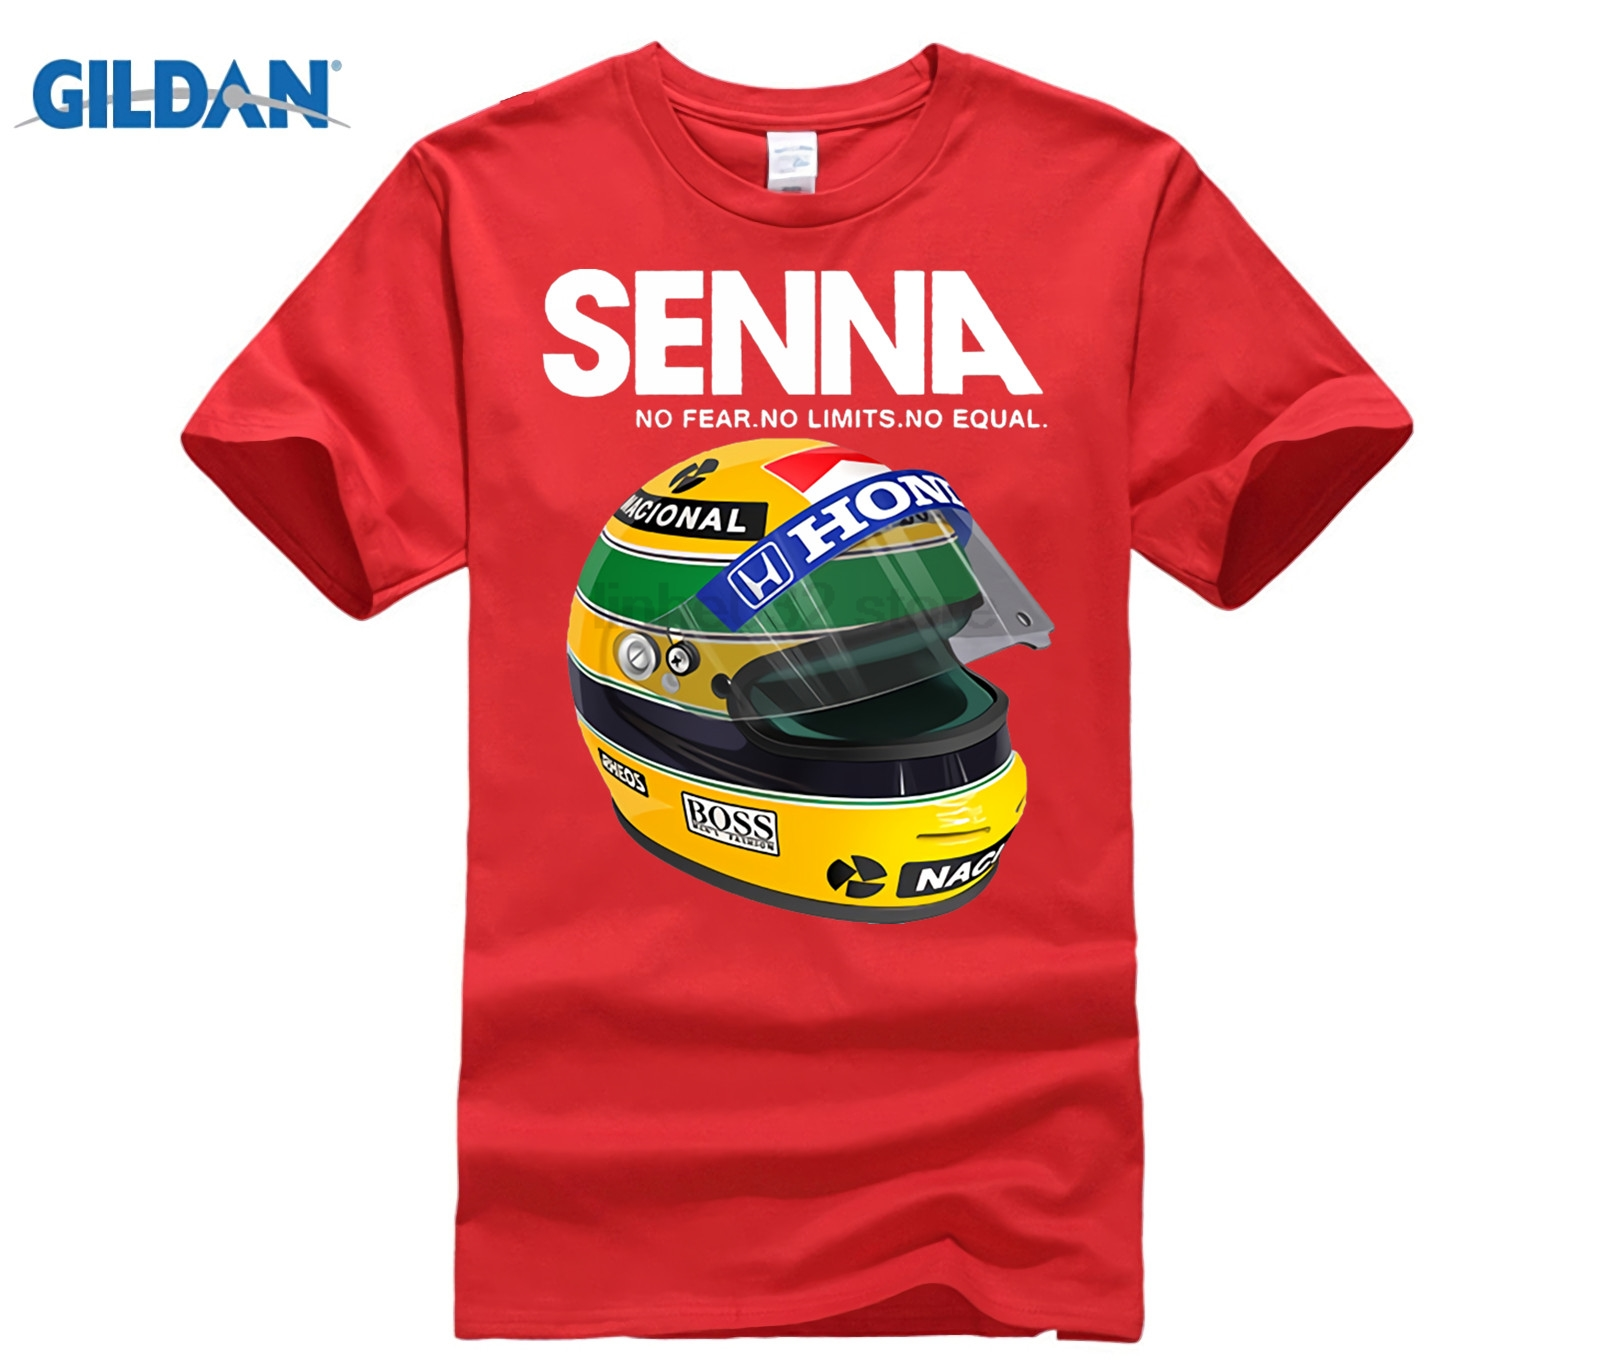 ayrton-font-b-senna-b-font-helmet-tee-tops-clothing-1-race-car-man-crew-neck-short-sleeve-t-shirt-popular-man-big-size-t-shirt